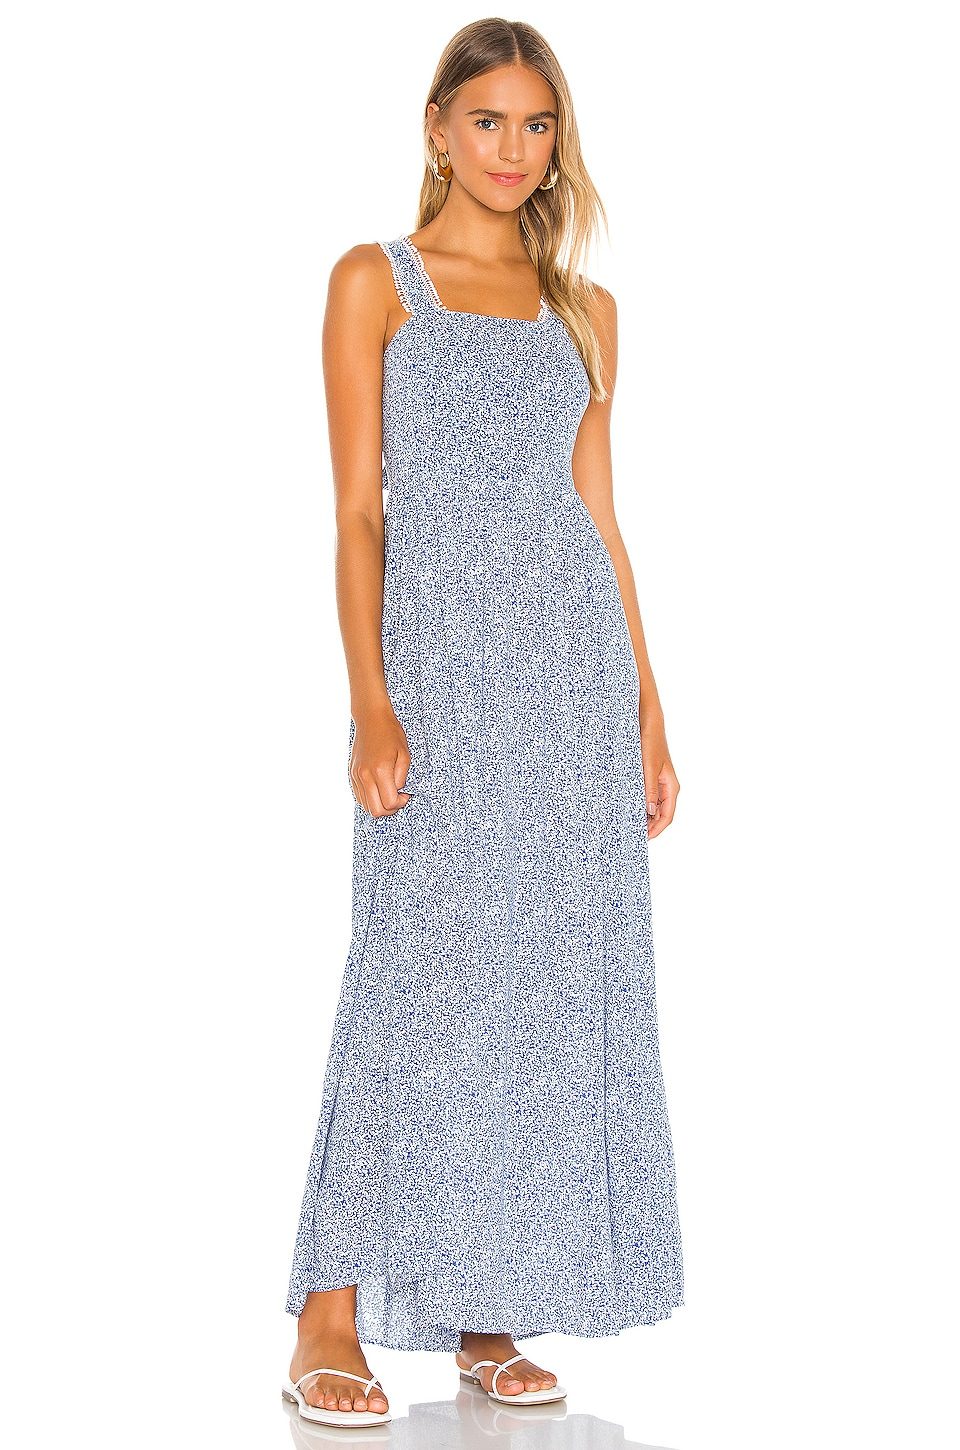 Tie Back Vintage Ditsy Maxi Dress, view 2, click to view large image.